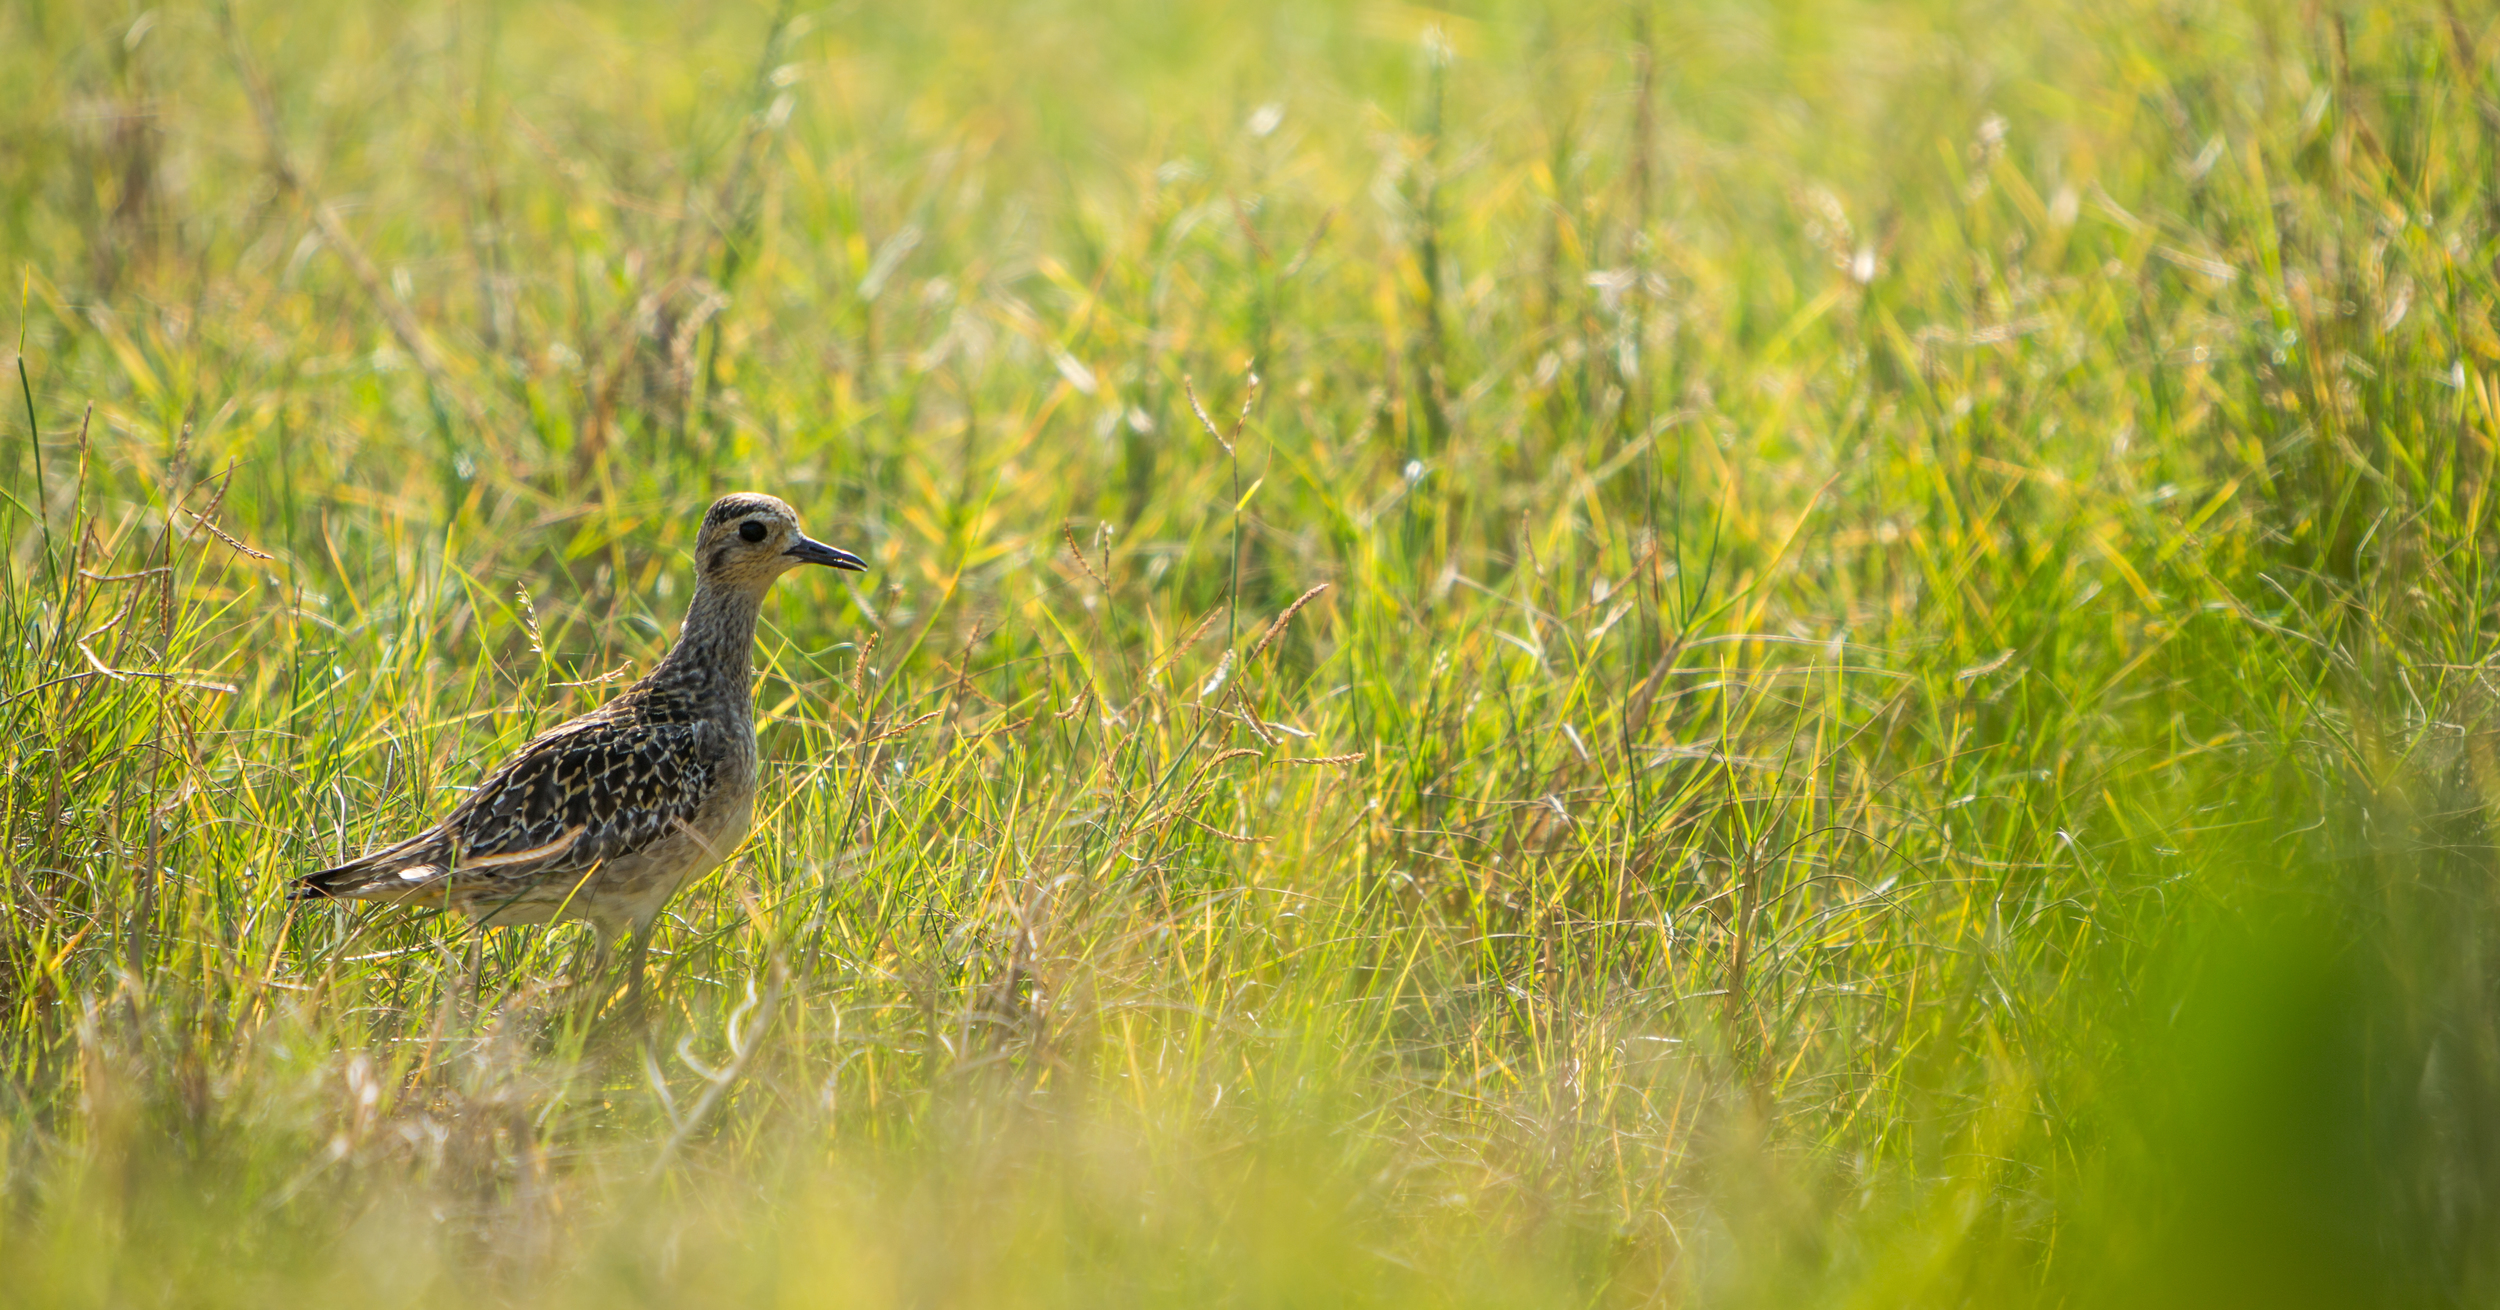 Pacific Golden-Plover - Pluvialis fulva (native, overwintering)